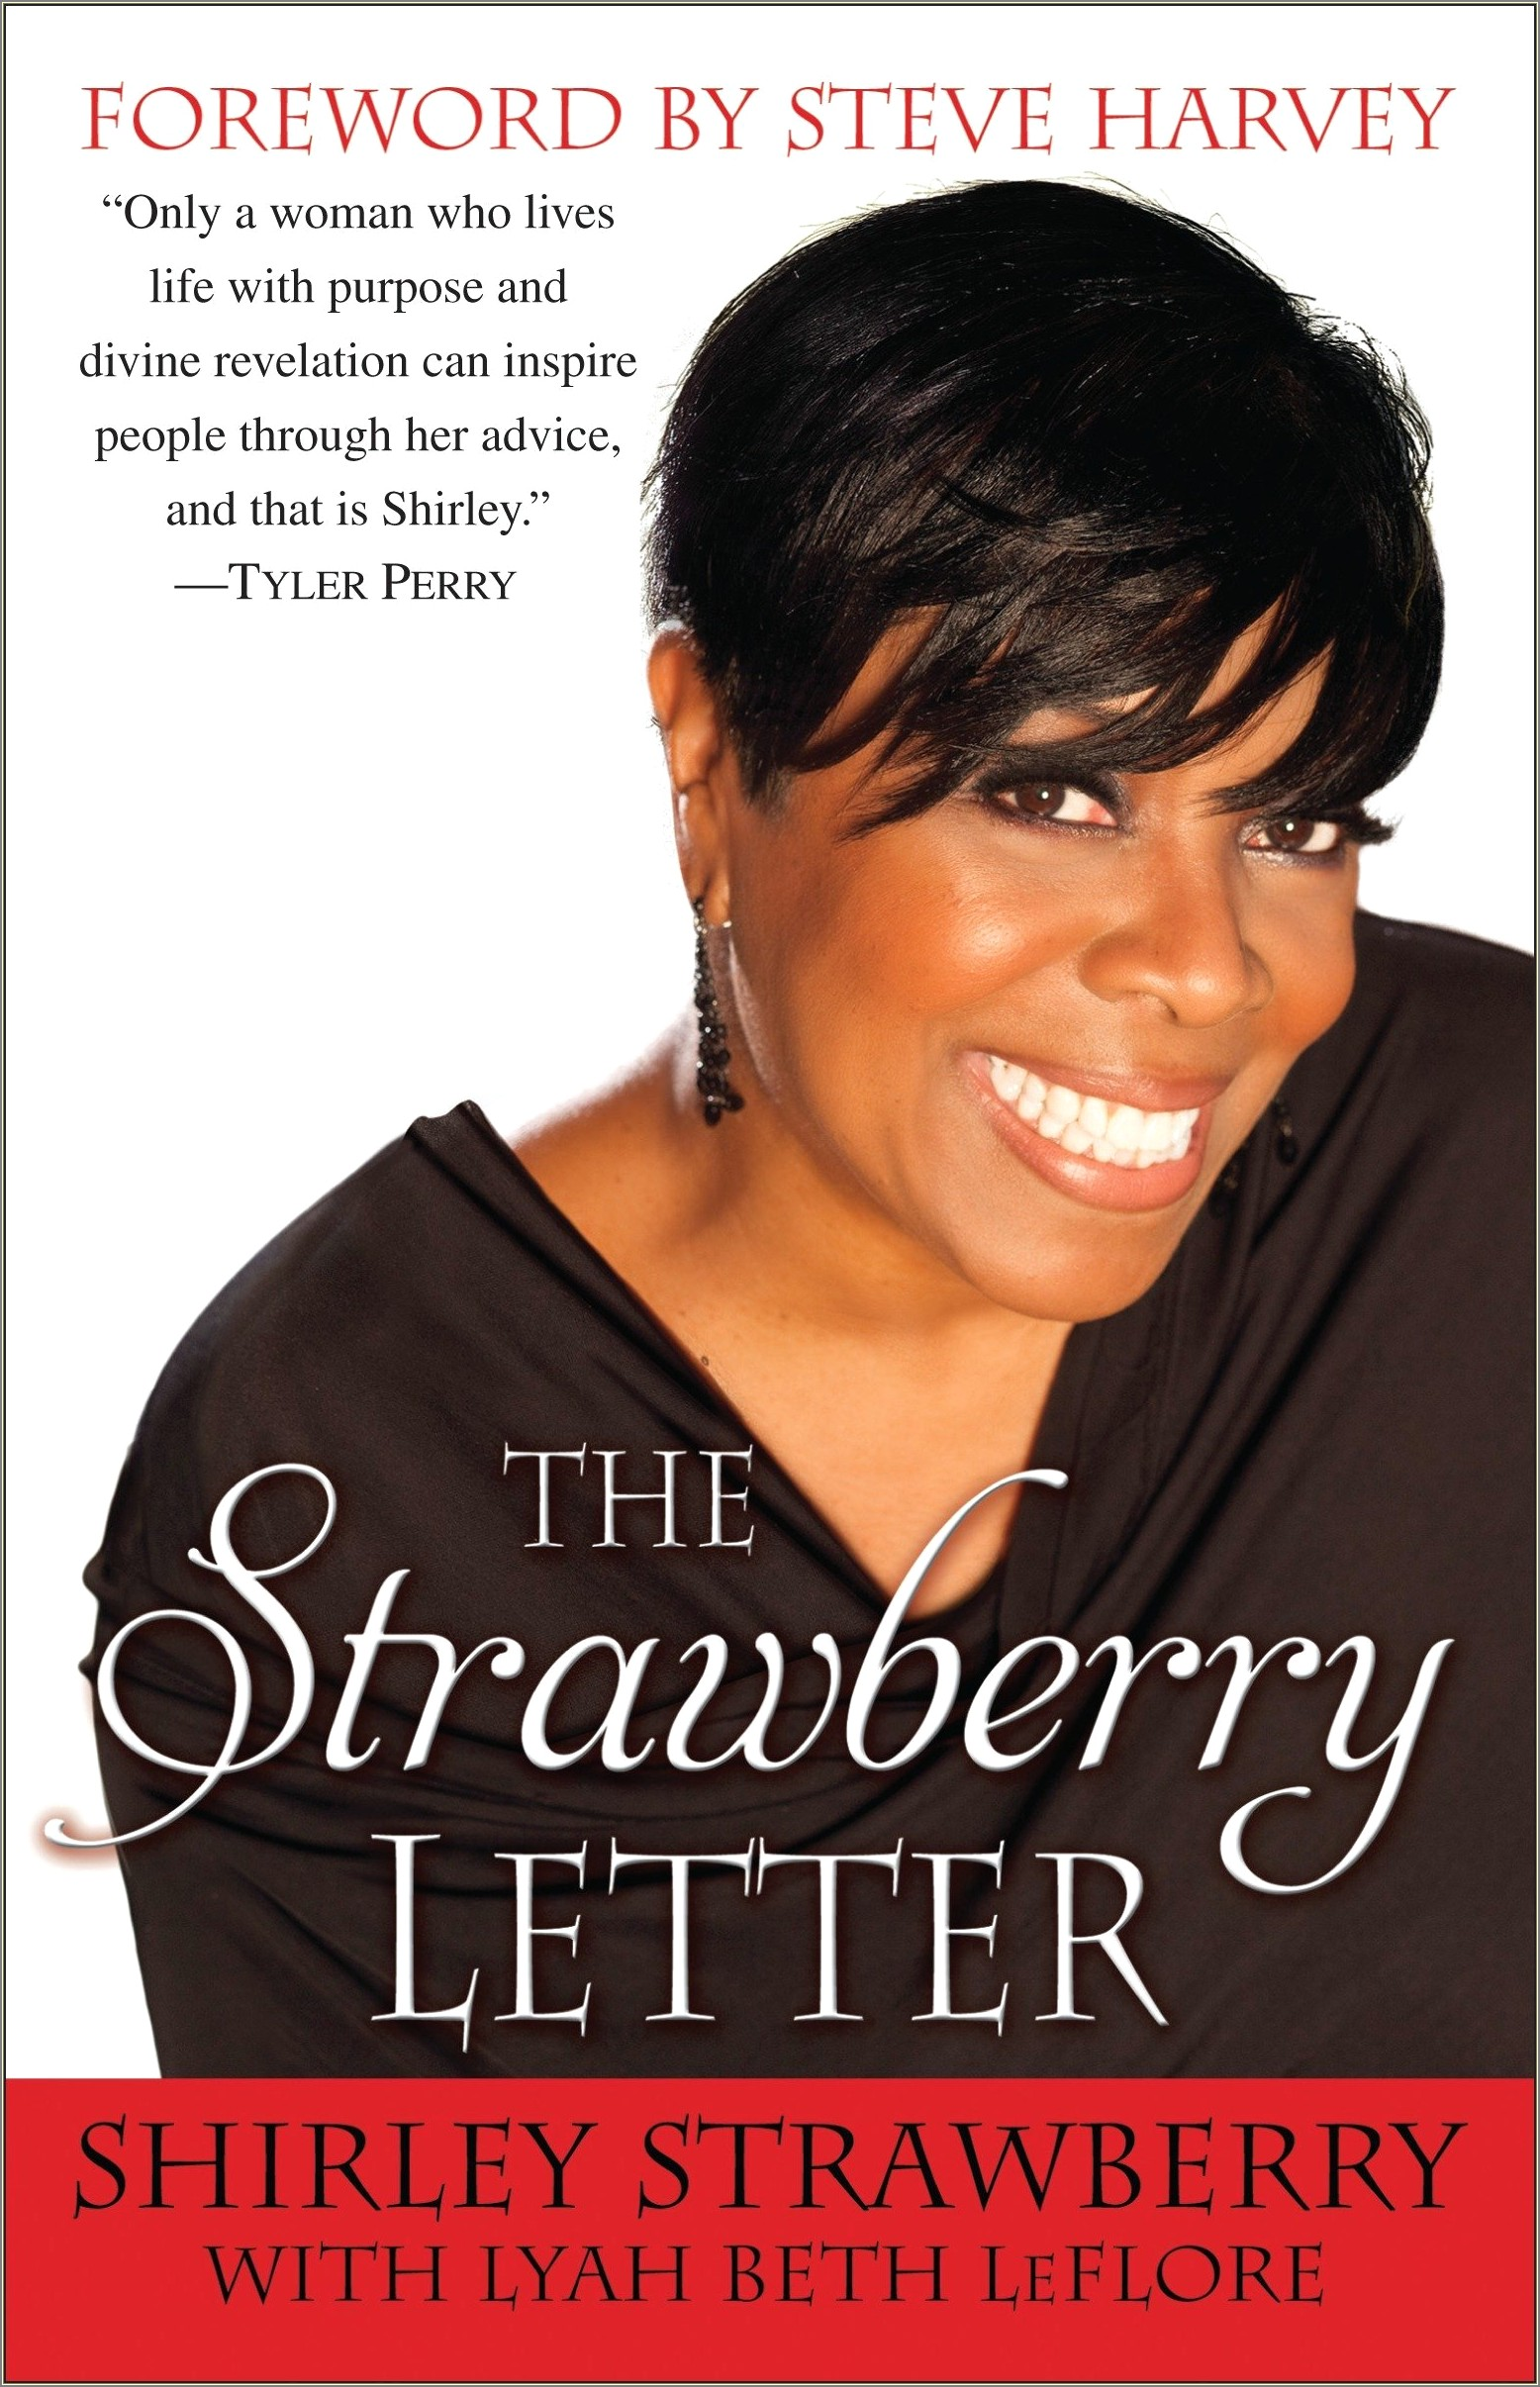 Steve Harvey Strawberry Letter Today